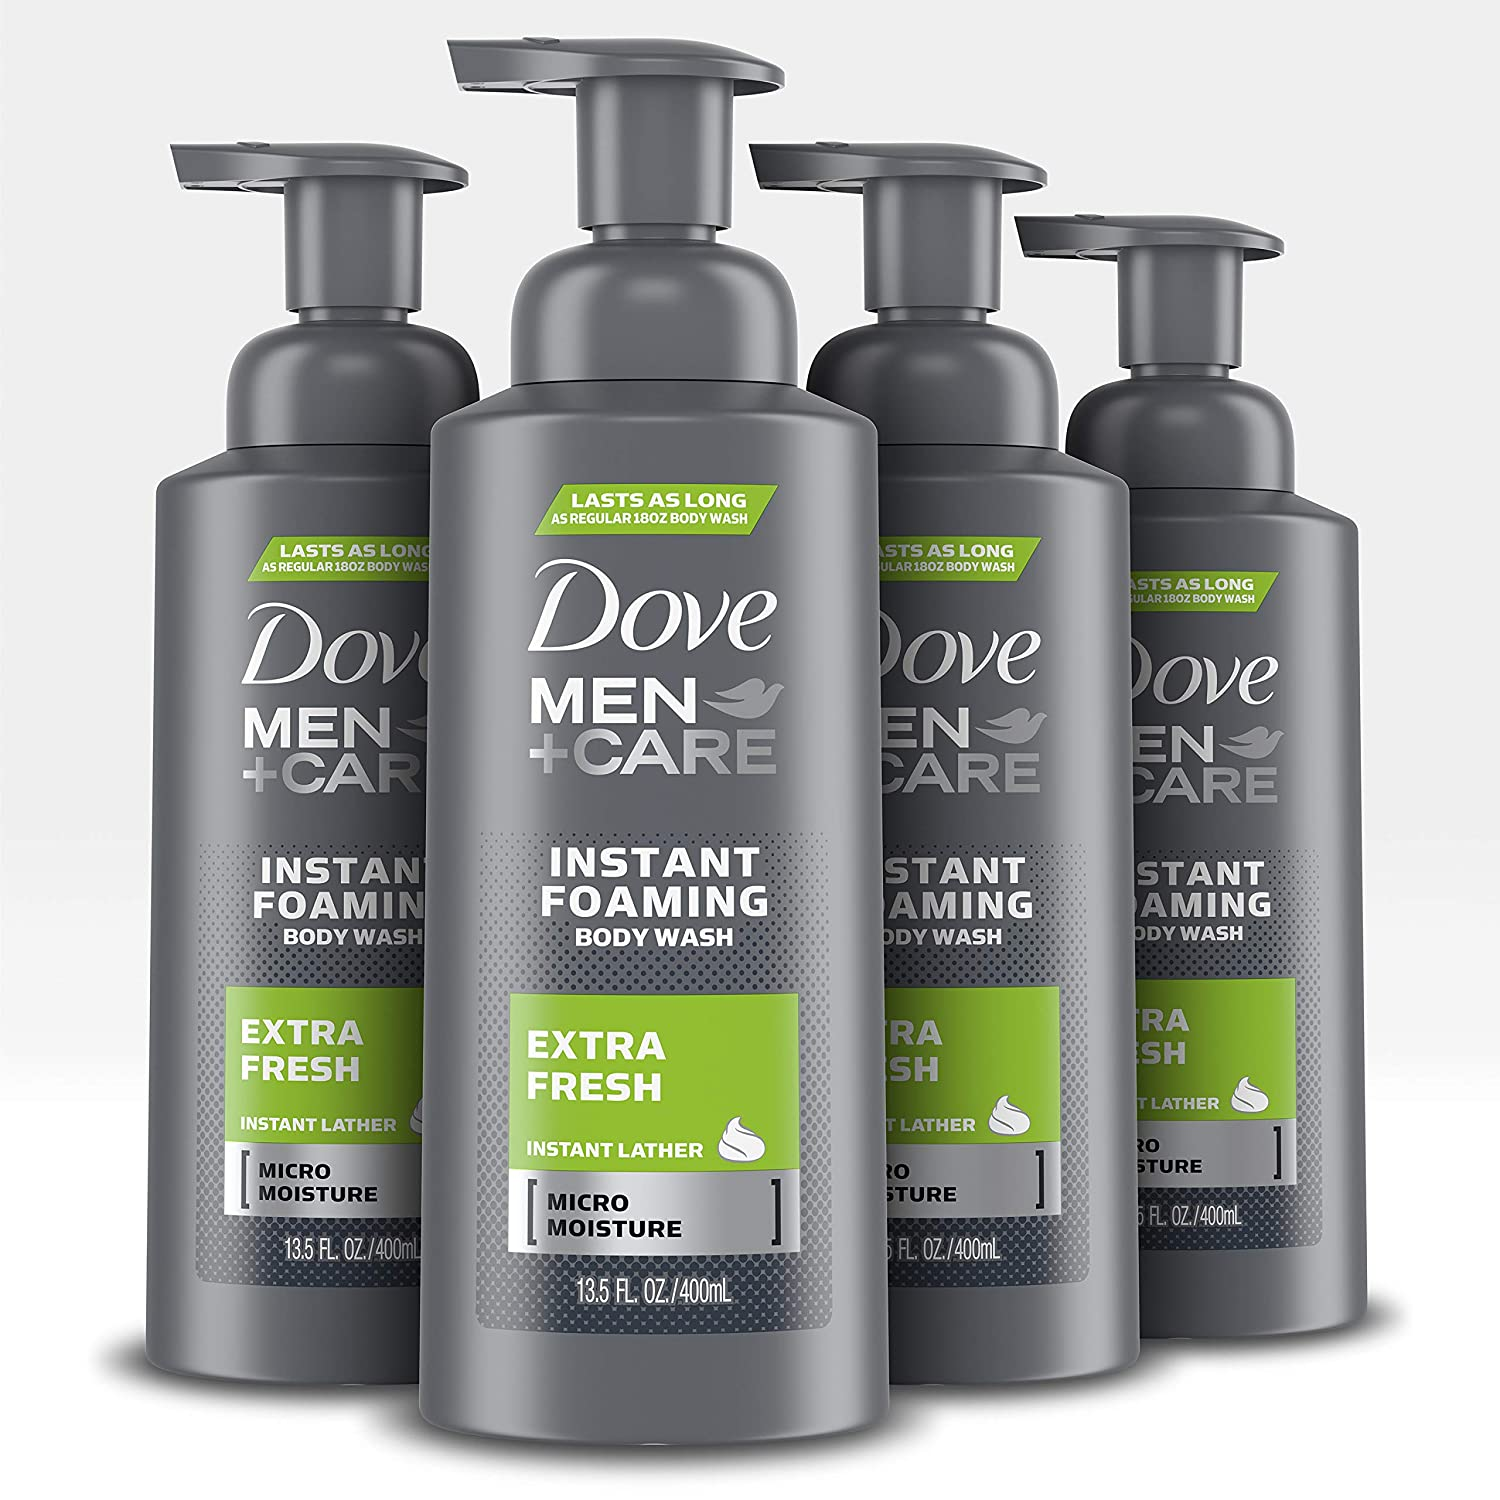 Amazon Com Dove Men Care Foaming Body Wash To Hydrate Skin Clean Comfort Effectively Washes Away Bacteria While Nourishing Your Skin 13 5 Oz 4 Count Beauty